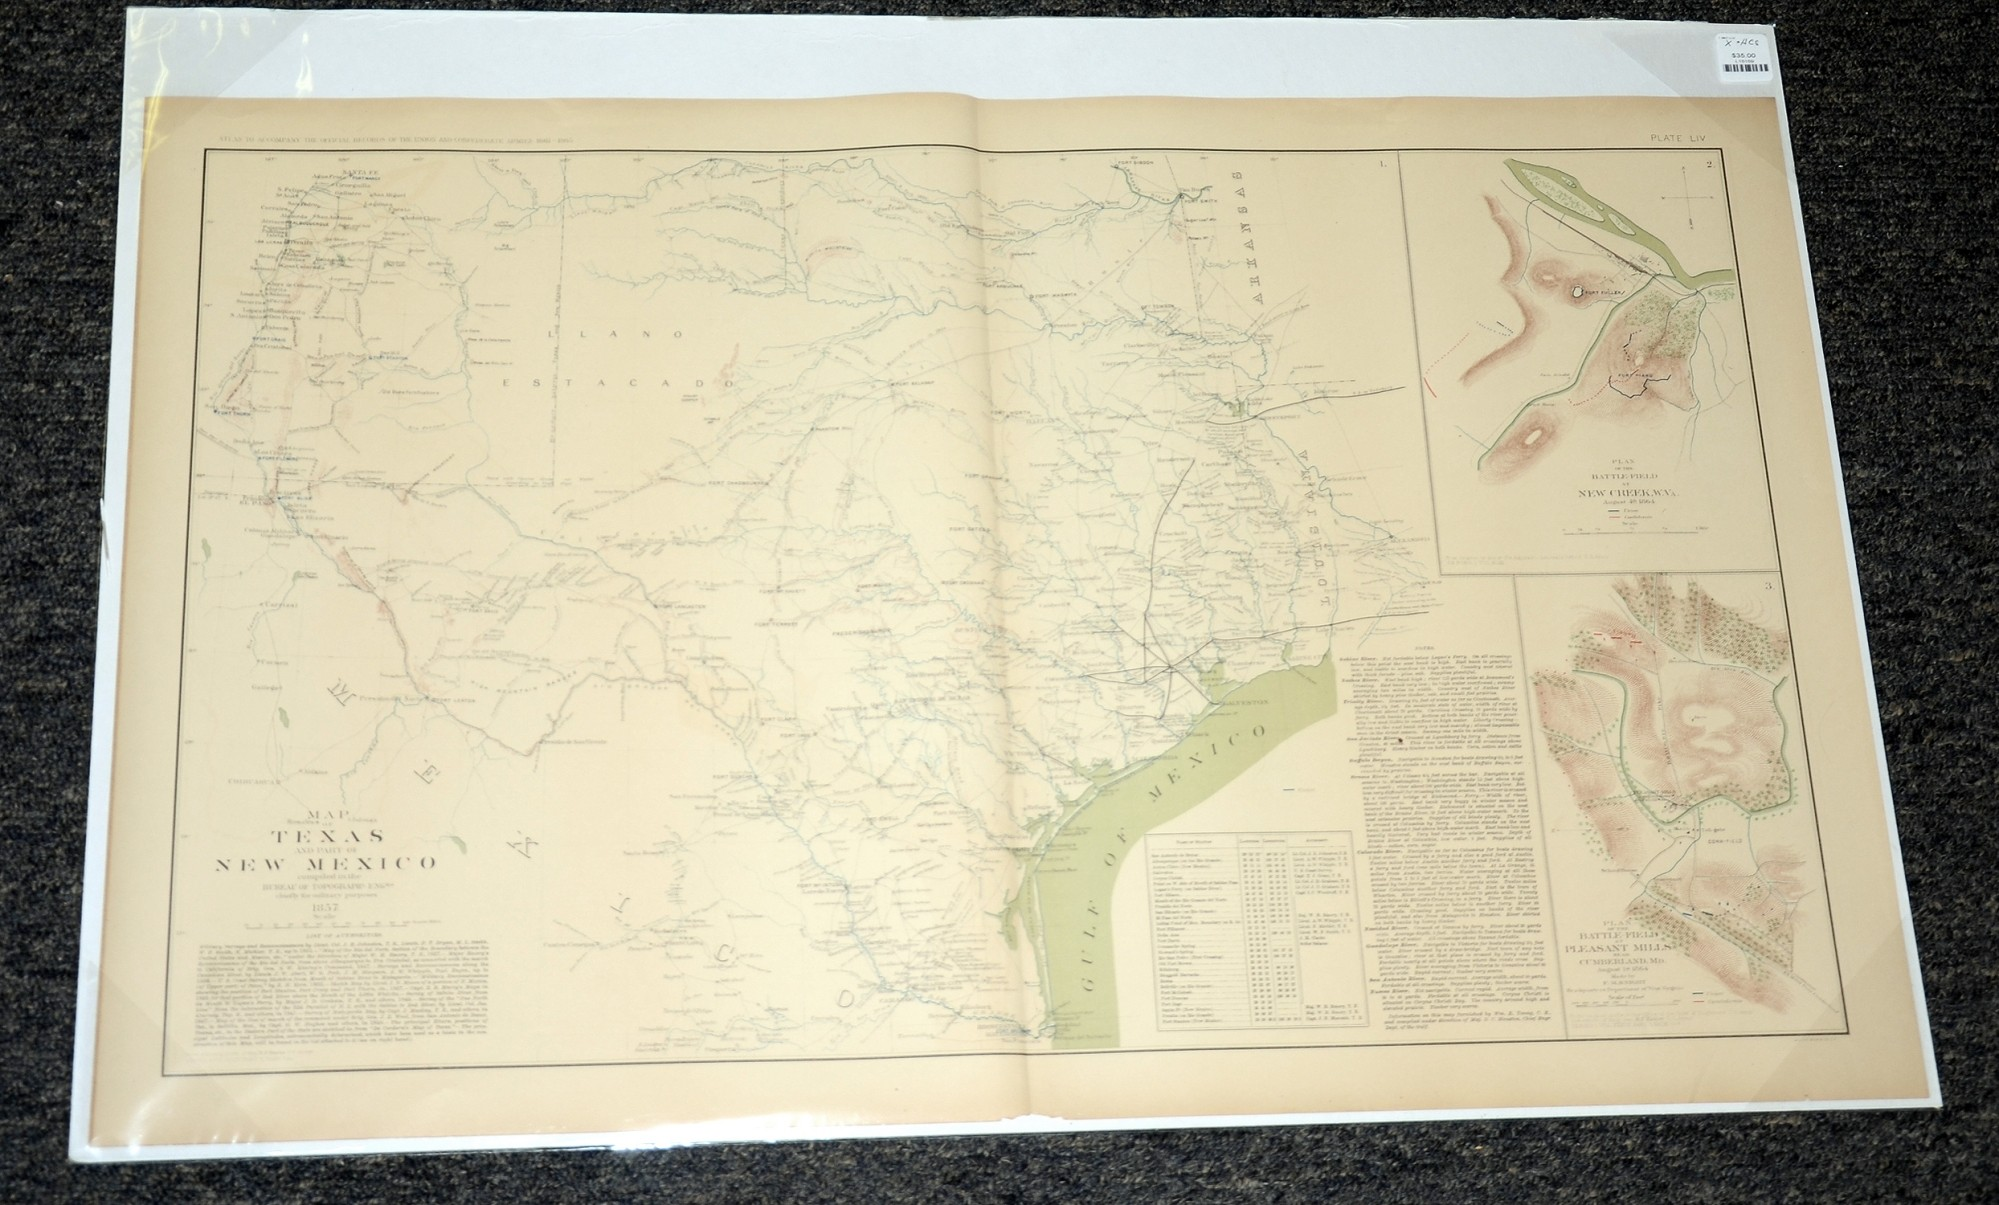 MAPS OF TEXAS AND NEW MEXICO AND THE BATTLEFIELDS AT NEW CREEK WEST VIRGINIA & PLEASANT MILLS, IN CUMBERLAND, MD OF THE ATLANTA CAMPAIGN